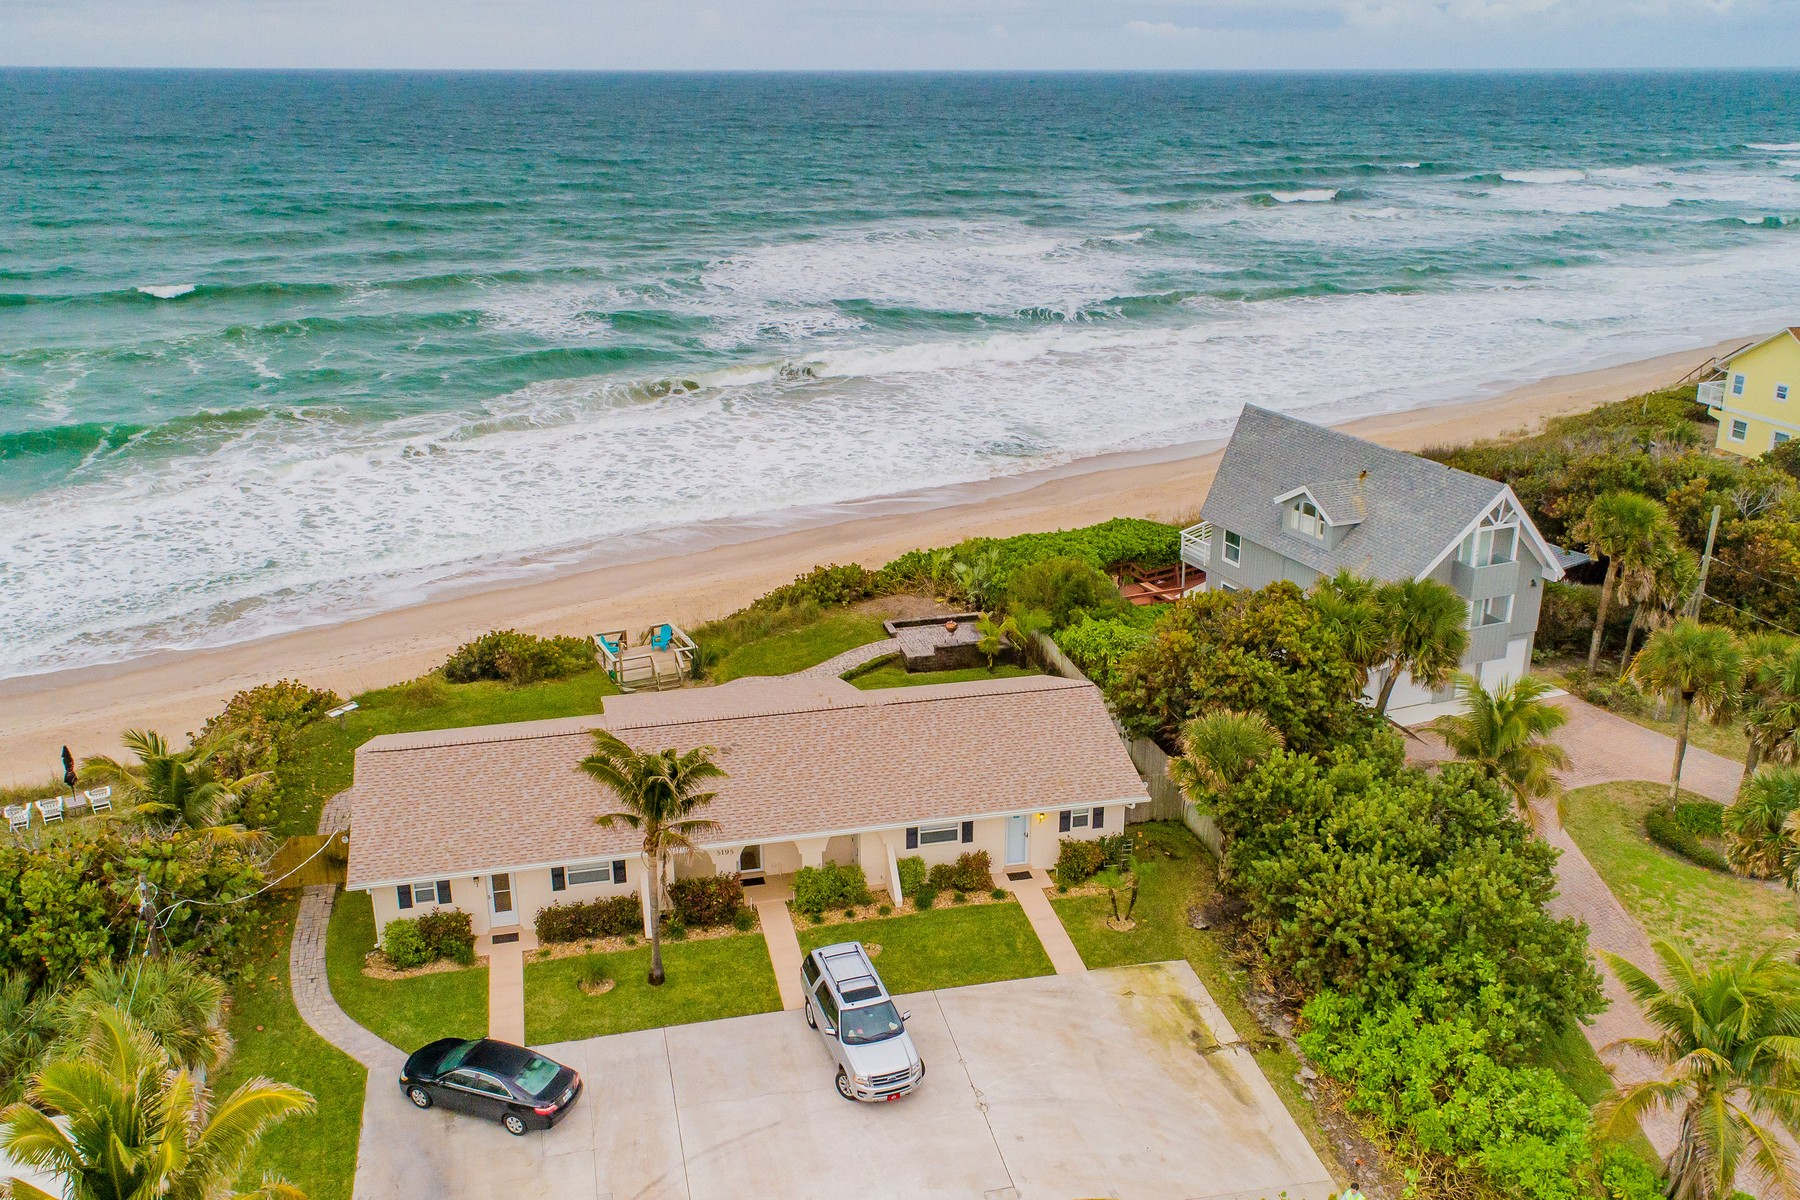 Multi-Family Homes for Sale at Serenity Oceanfront Beach Resort 5195 S Highway A1A Melbourne Beach, Florida 32951 United States